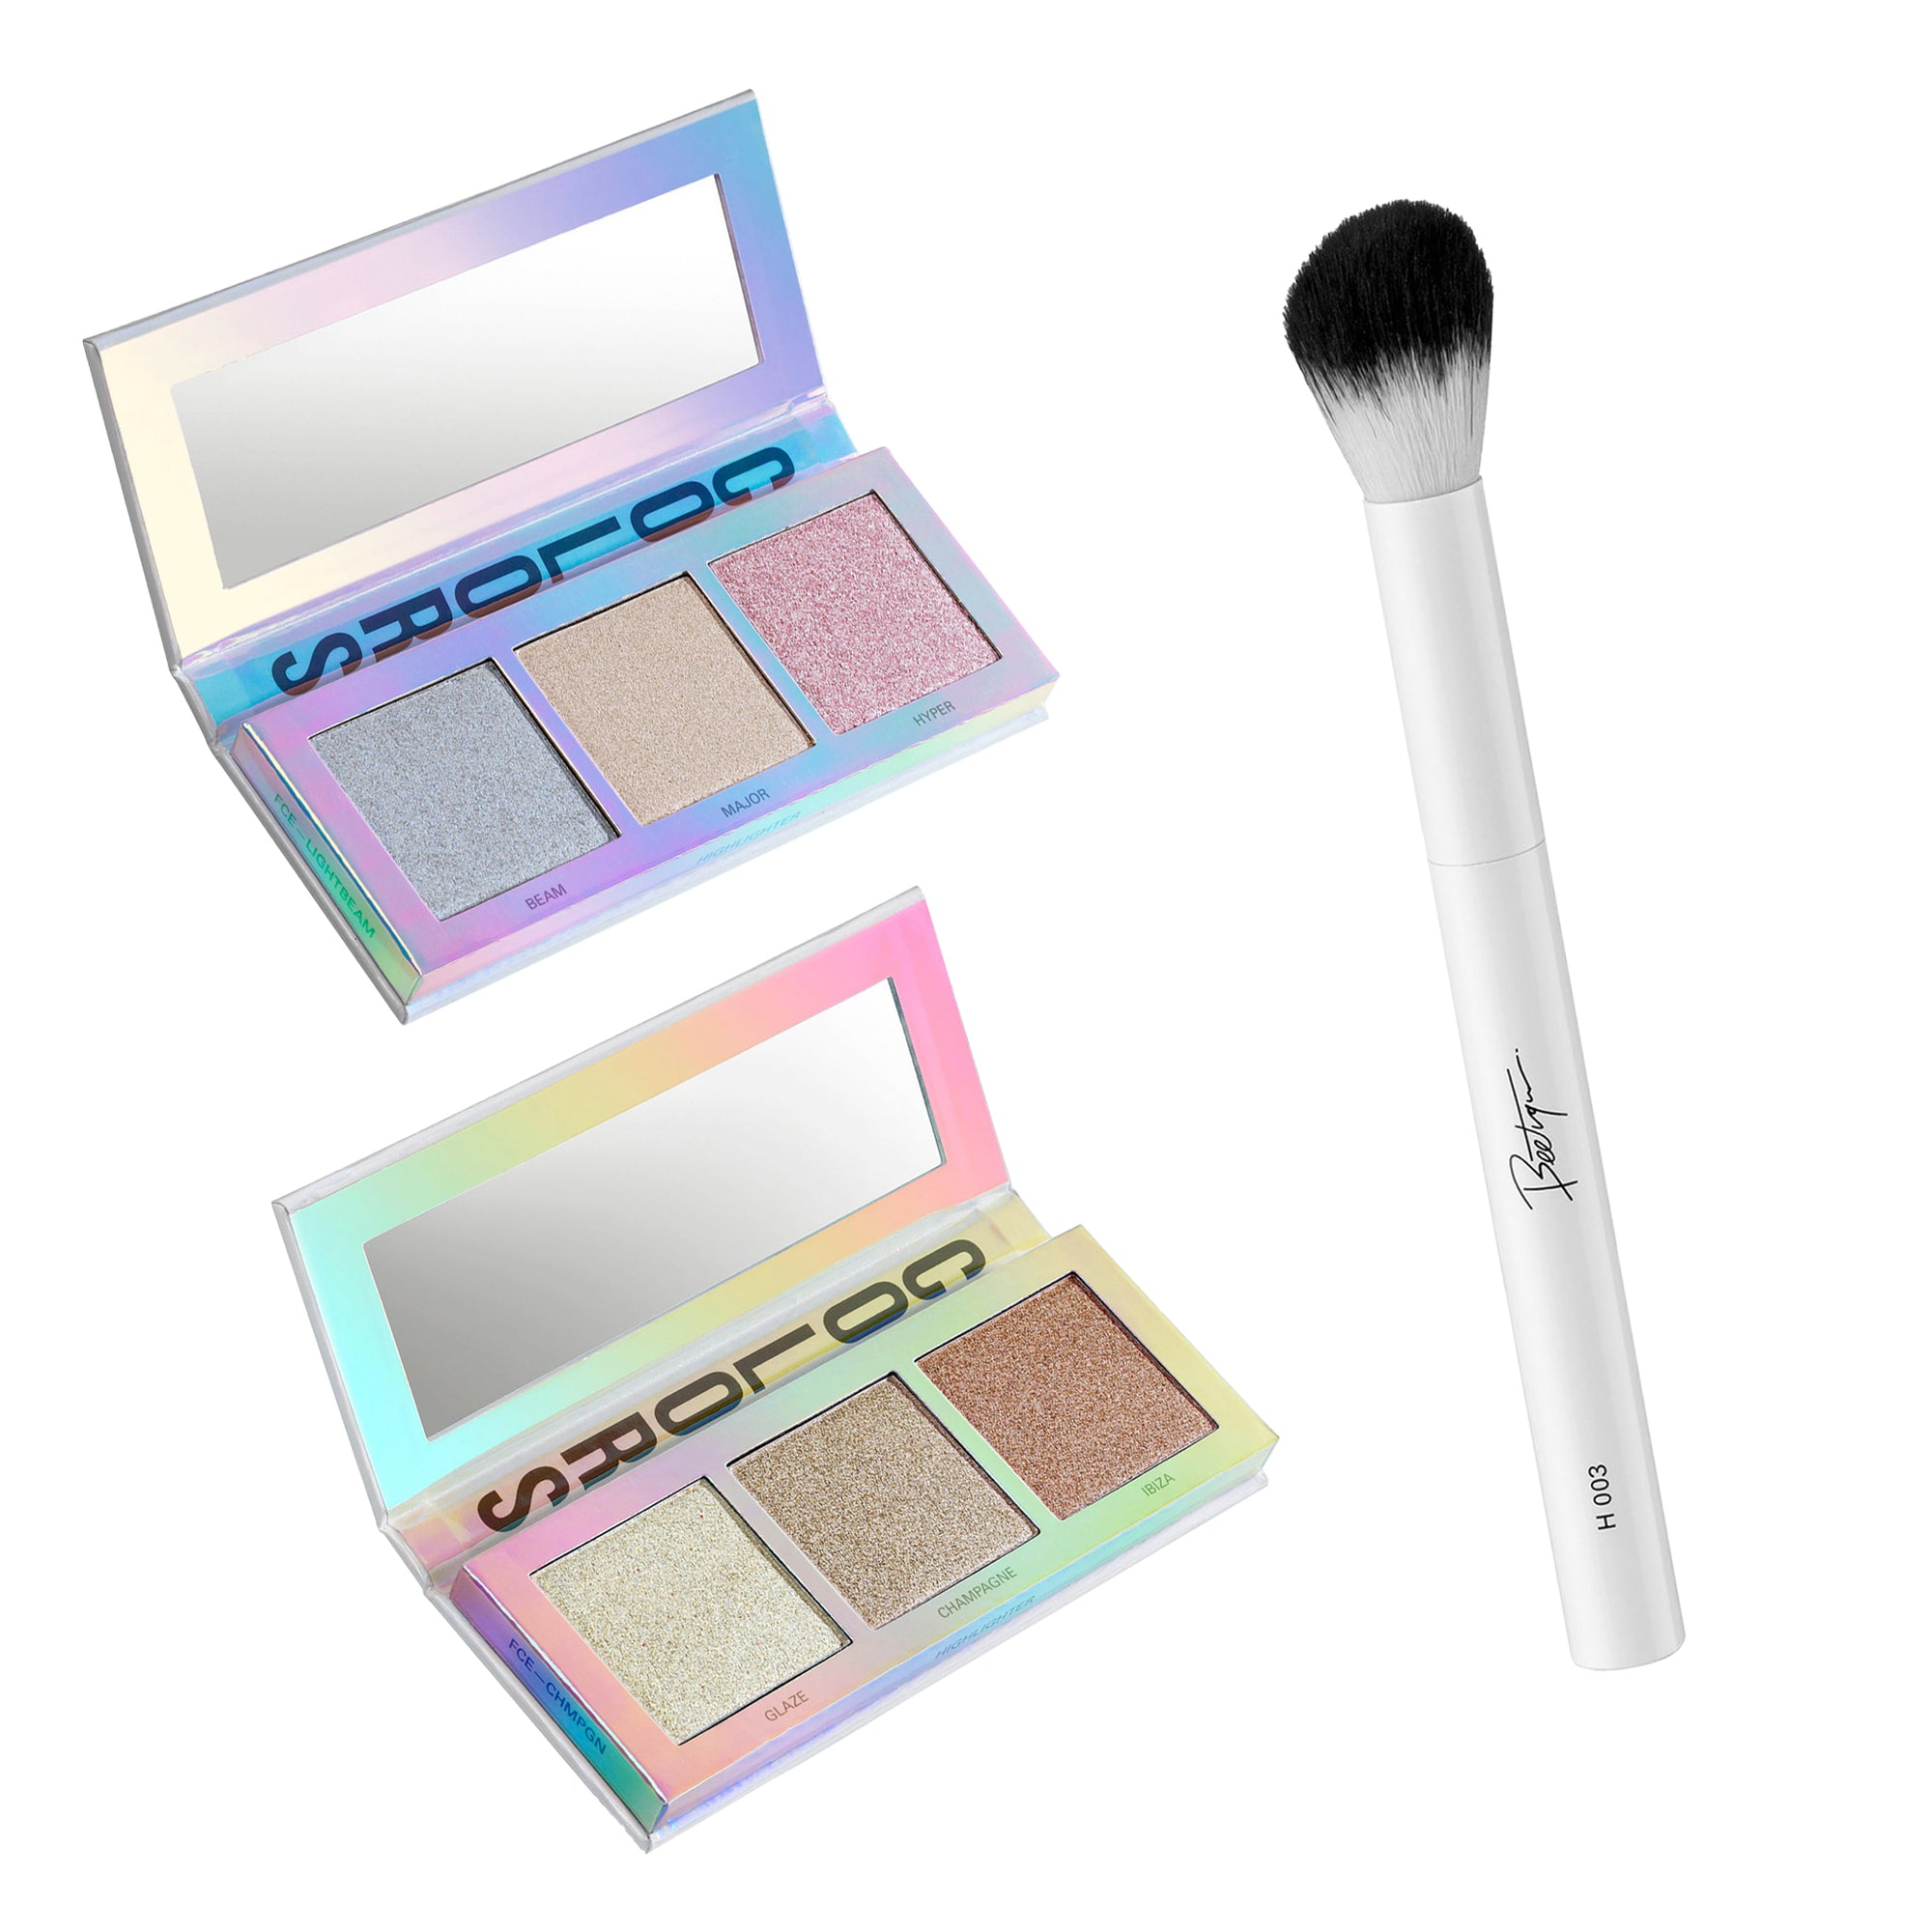 Highlighter Kit I 2 Highlighterpaletten mit drei Nuancen und Highlighter Pinsel I 100% Vegan I Top Qualität jetzt bestellen!